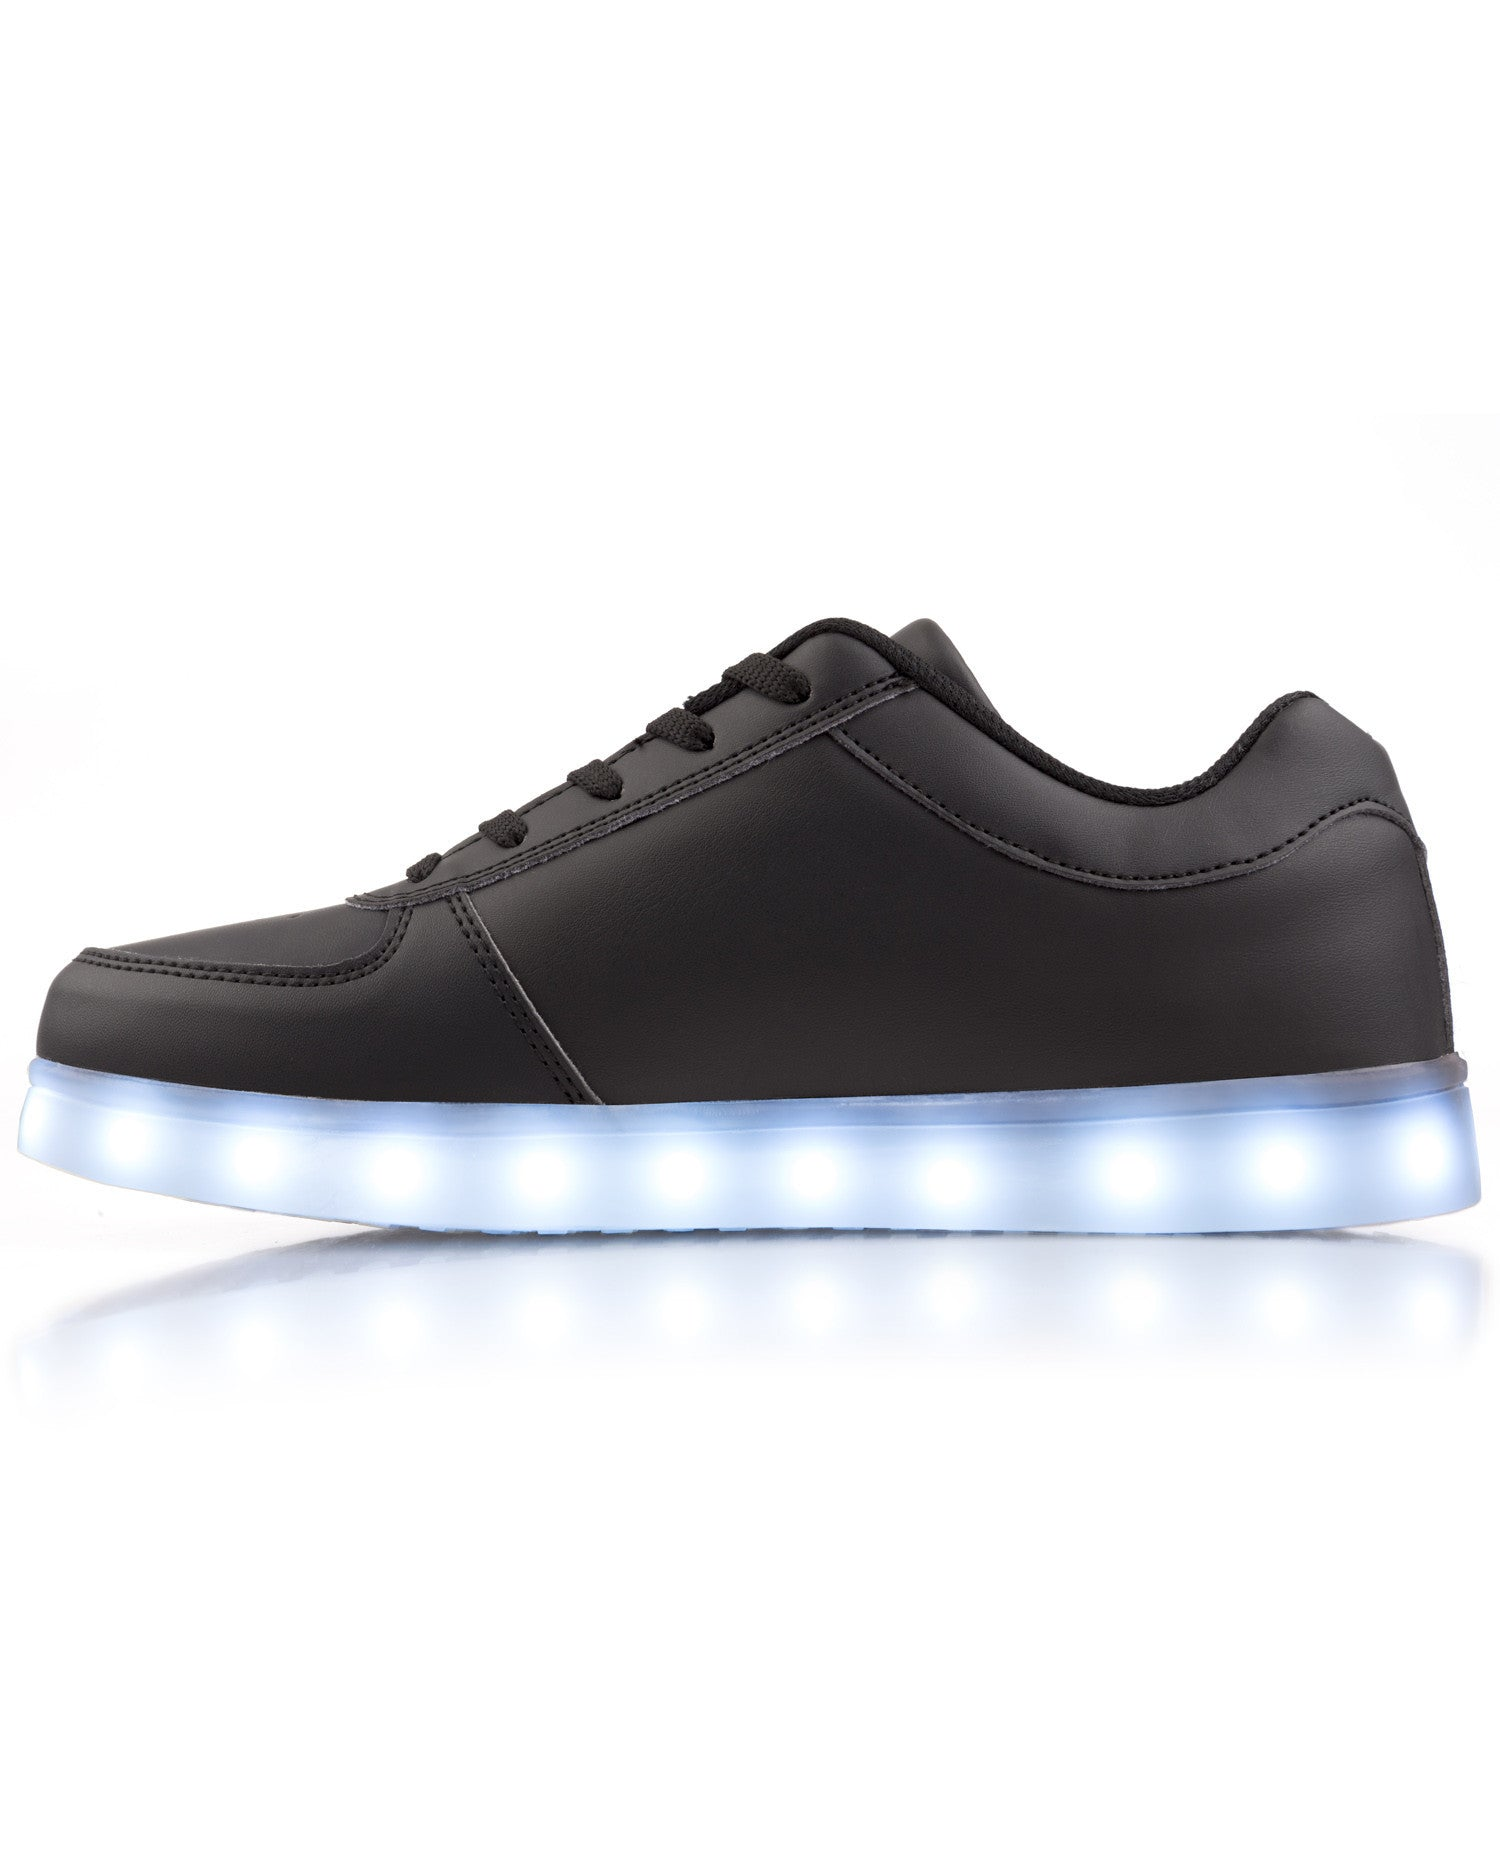 Electric Shoes - The Original - Electric Styles | World's Number 1 Light Up Shoe Store - {product_type}} -  - 12